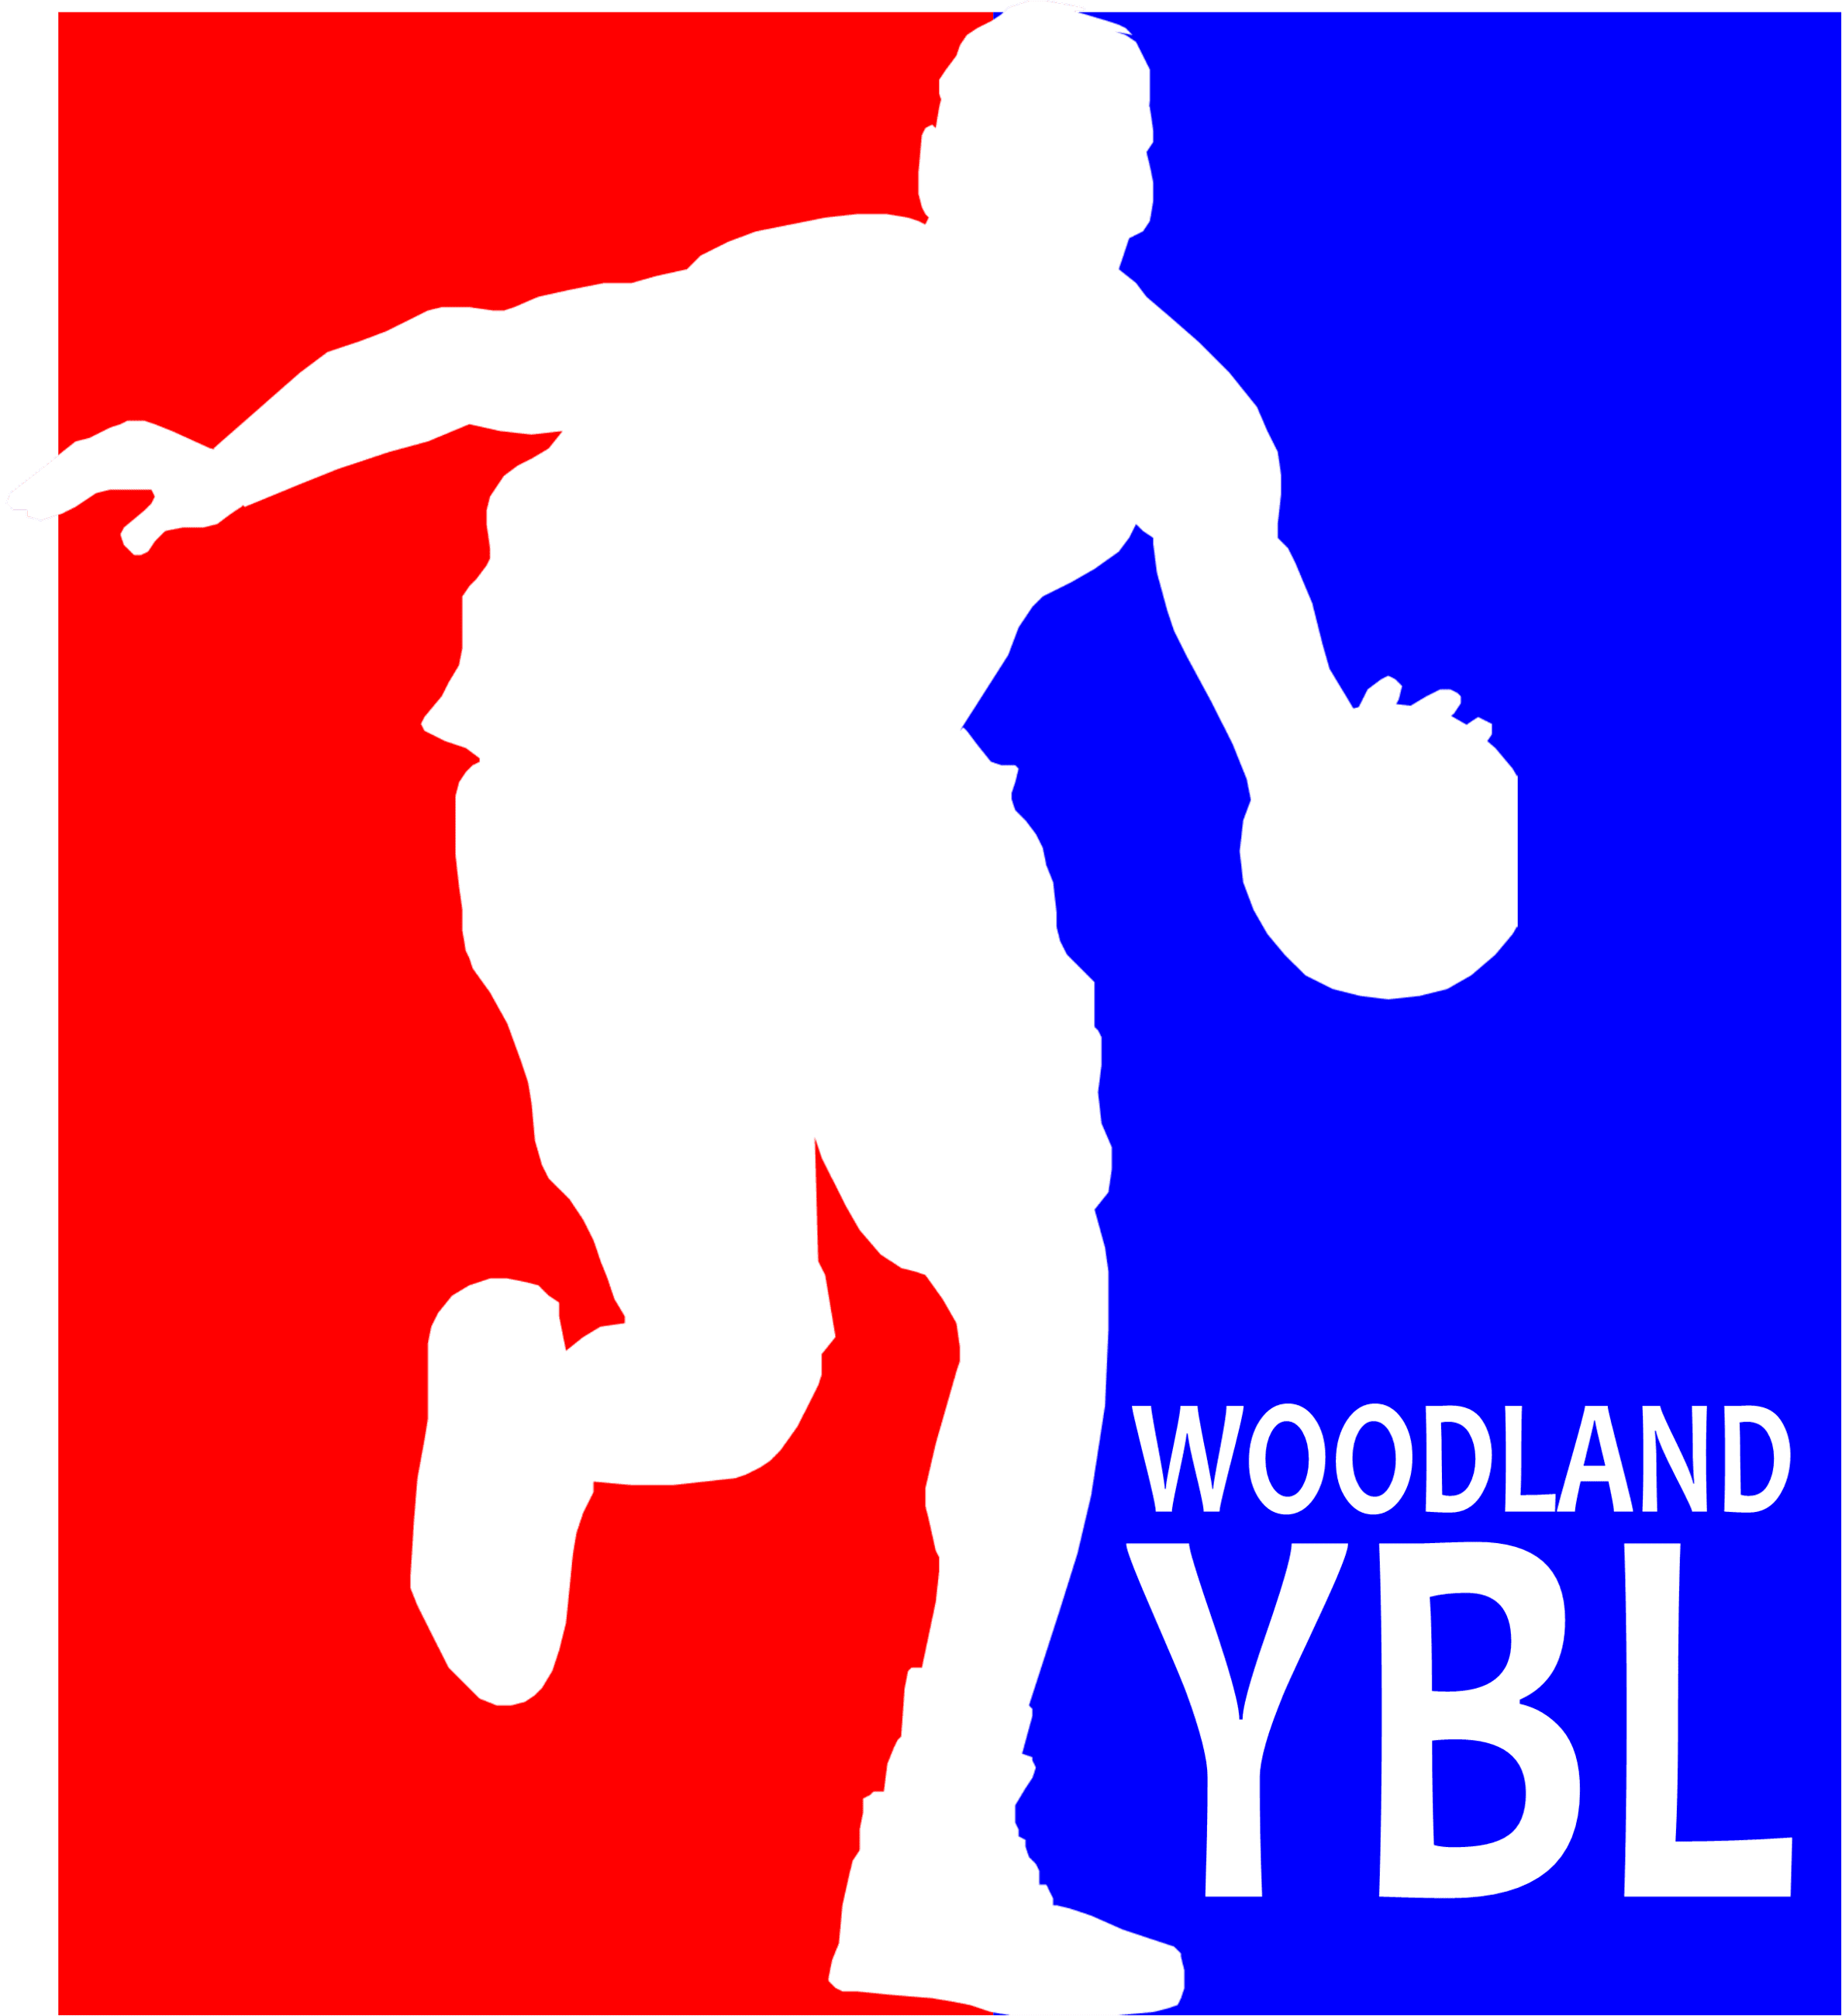 Woodland Youth Basketball Logo